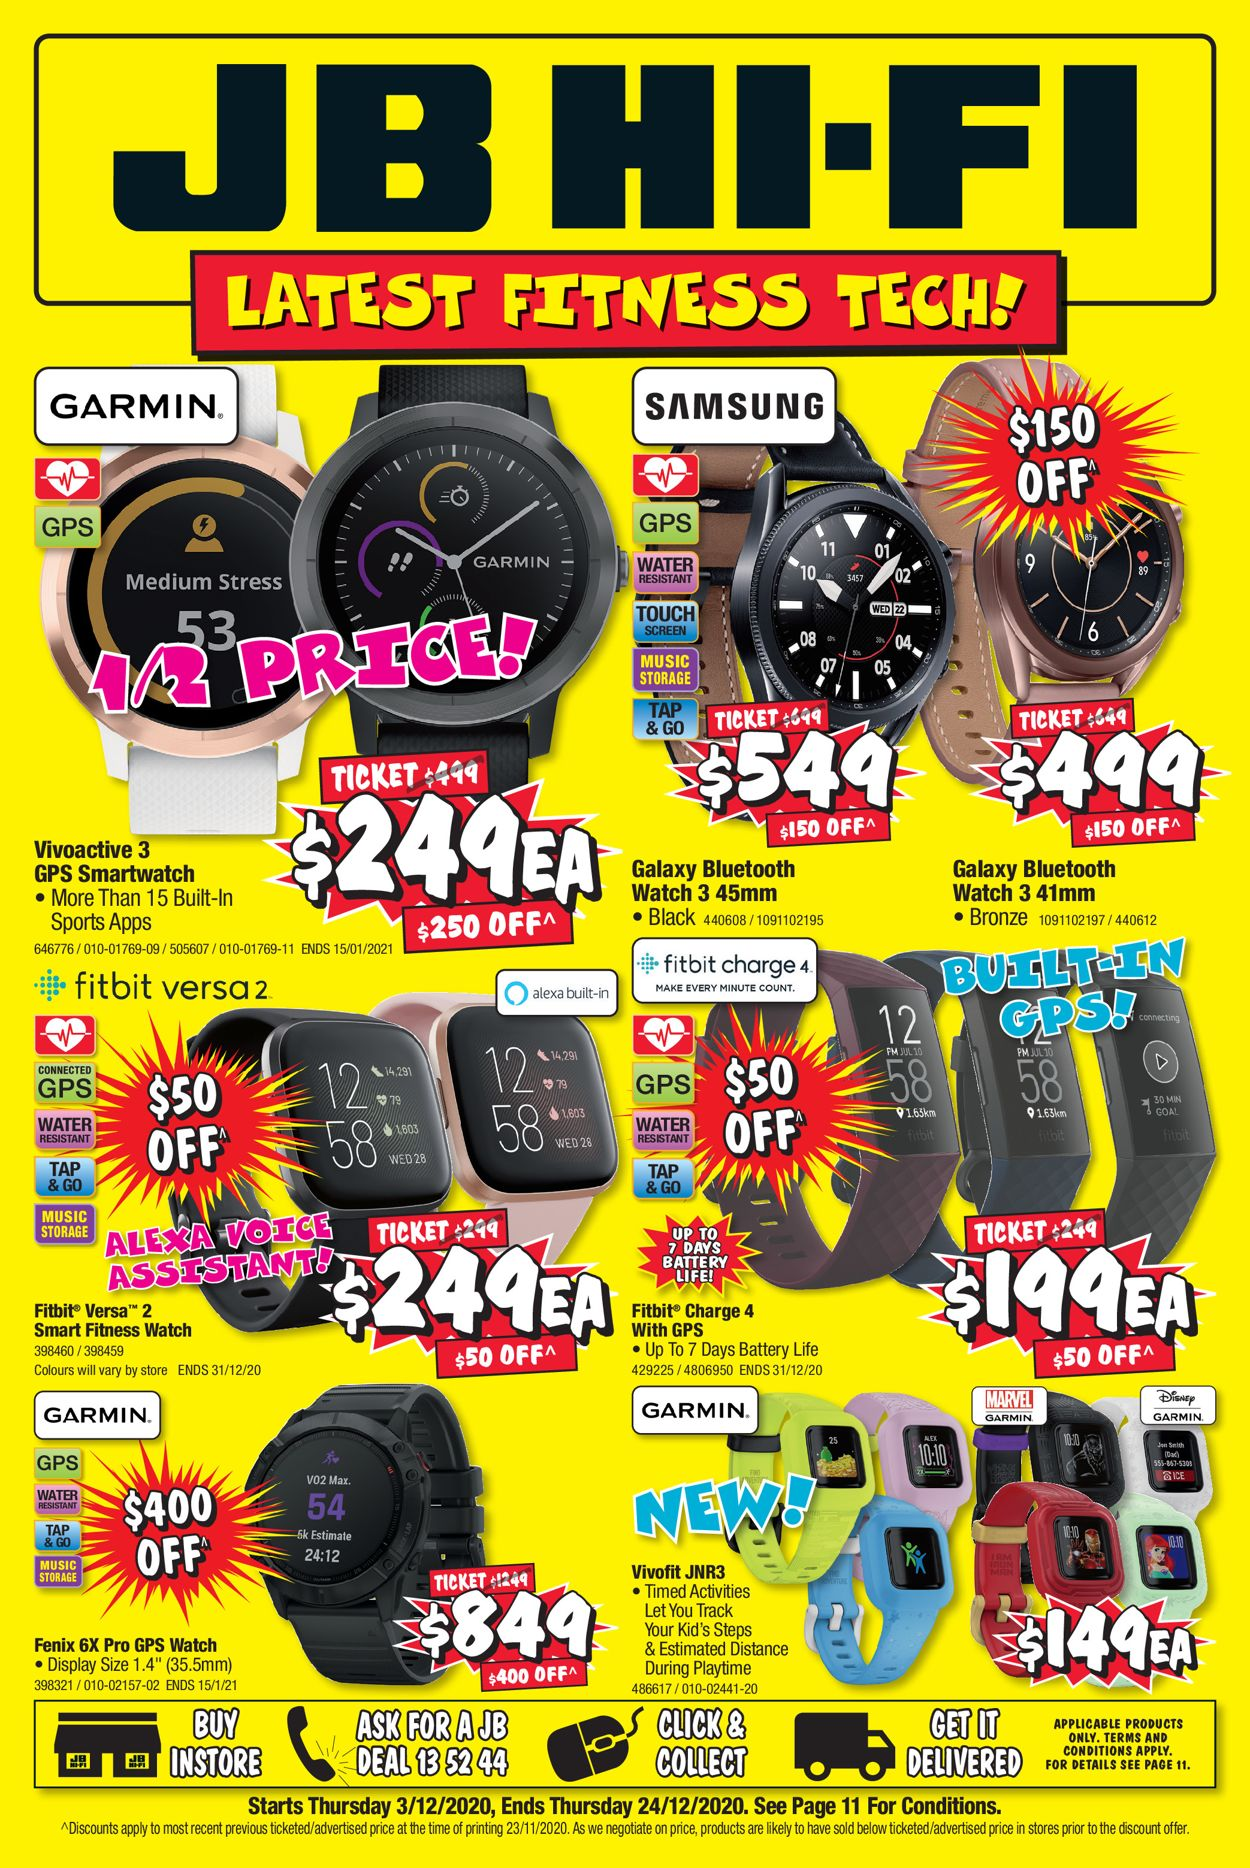 JB Hi-Fi Fitness Tech Catalogue - 03/12-24/12/2020